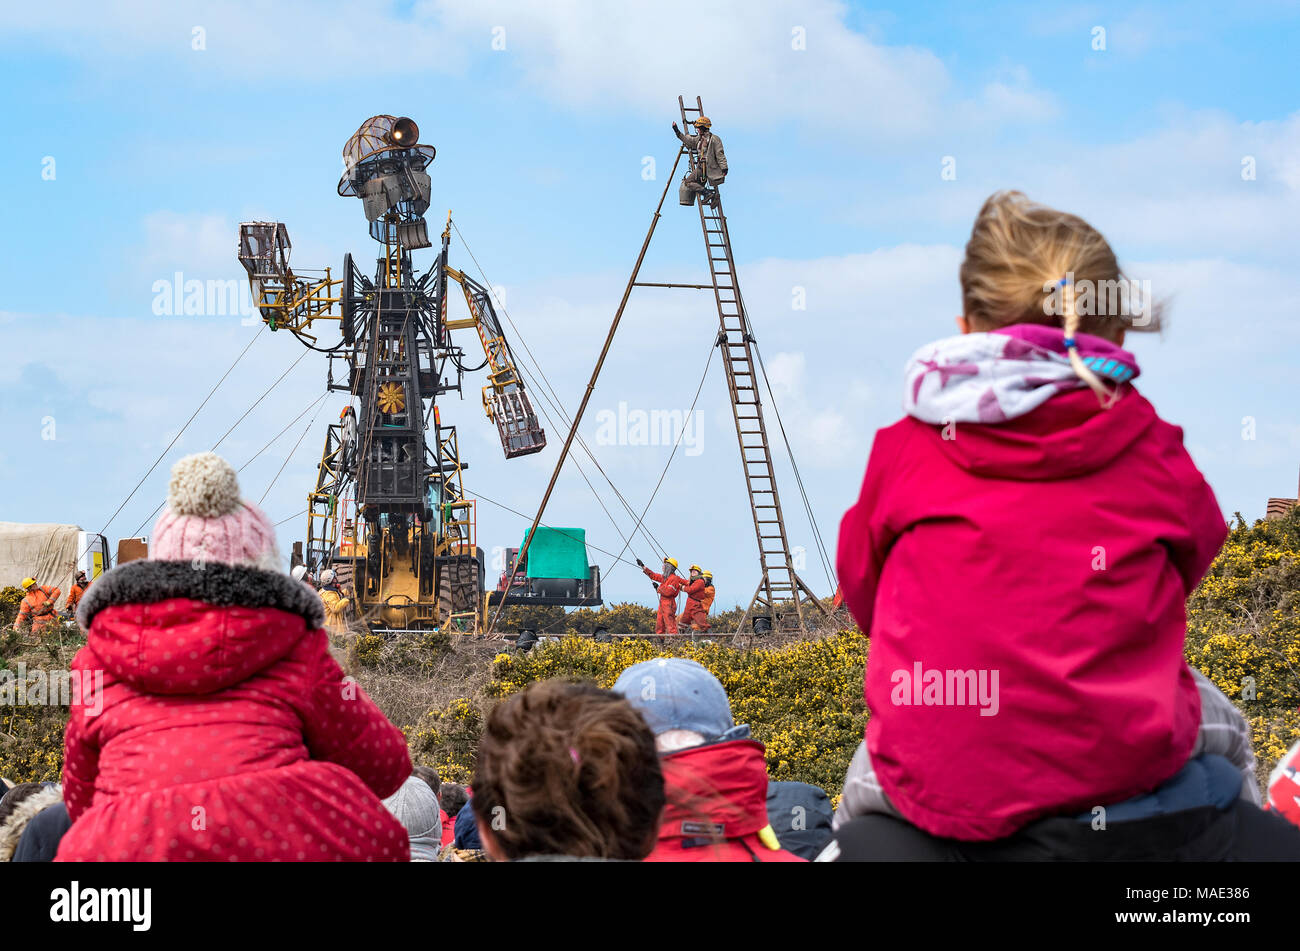 """Pendeen, Cornwall, UK. 31st March 2018. The """" Man Engine"""" at 11.2mt is the largest mechanical puppet ever constructed in Britain, he first appeared in 2016 to mark the 10th anniversary of Cornwall and West Devon Mining landscape being given World Heritage Status. Credit: Kevin Britland/Alamy Live News - Stock Image"""